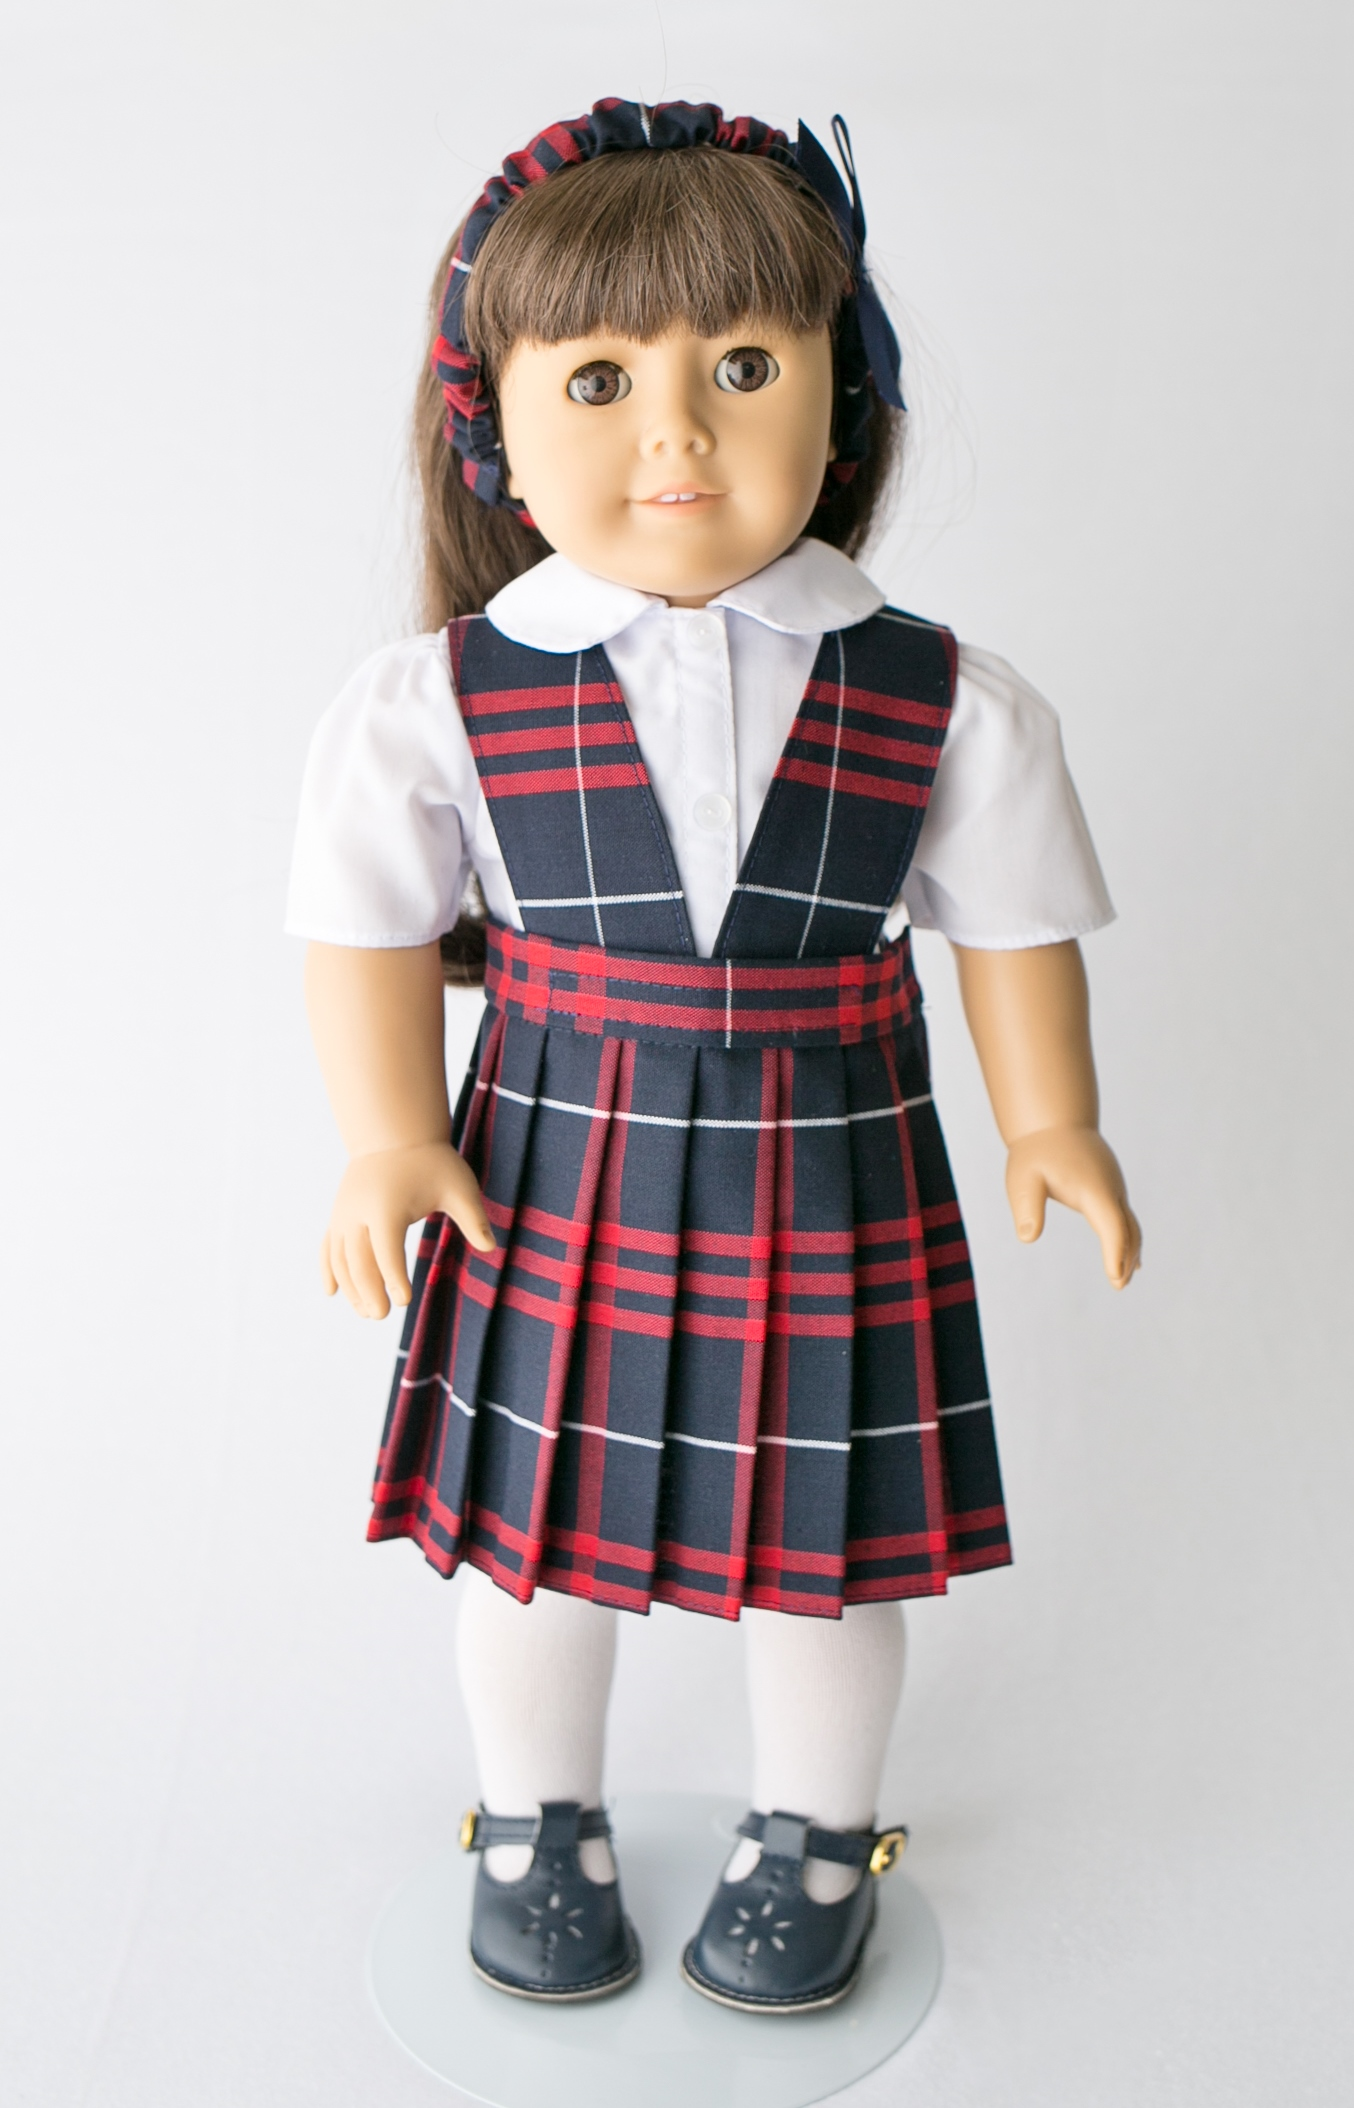 American Girl Doll School Uniforms Jumpers And Kilts